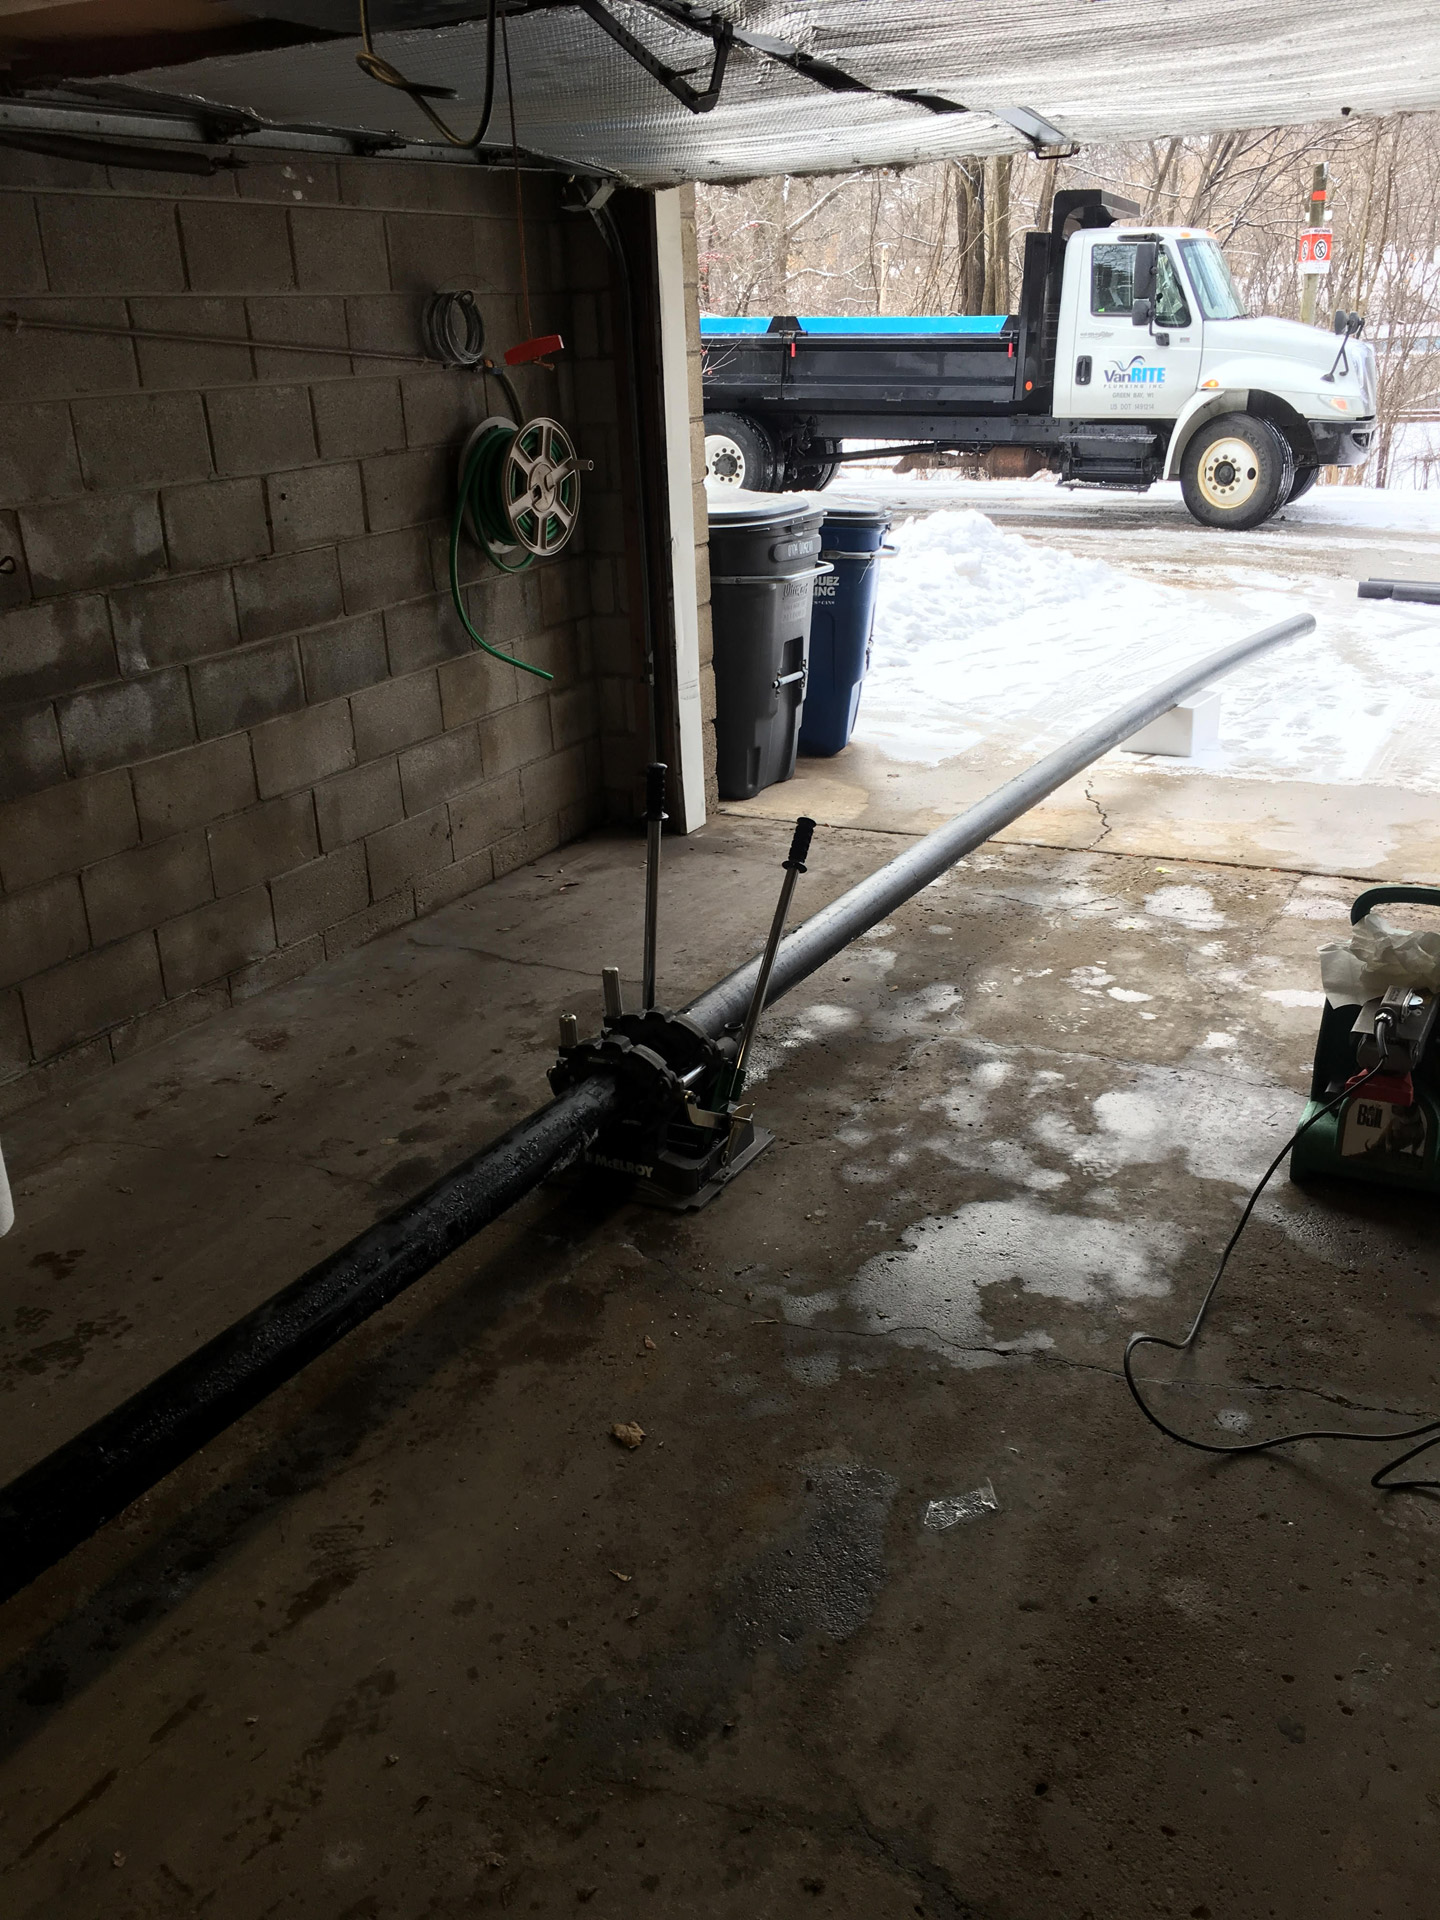 Sewer Pipe Staging in the Customer's Garage